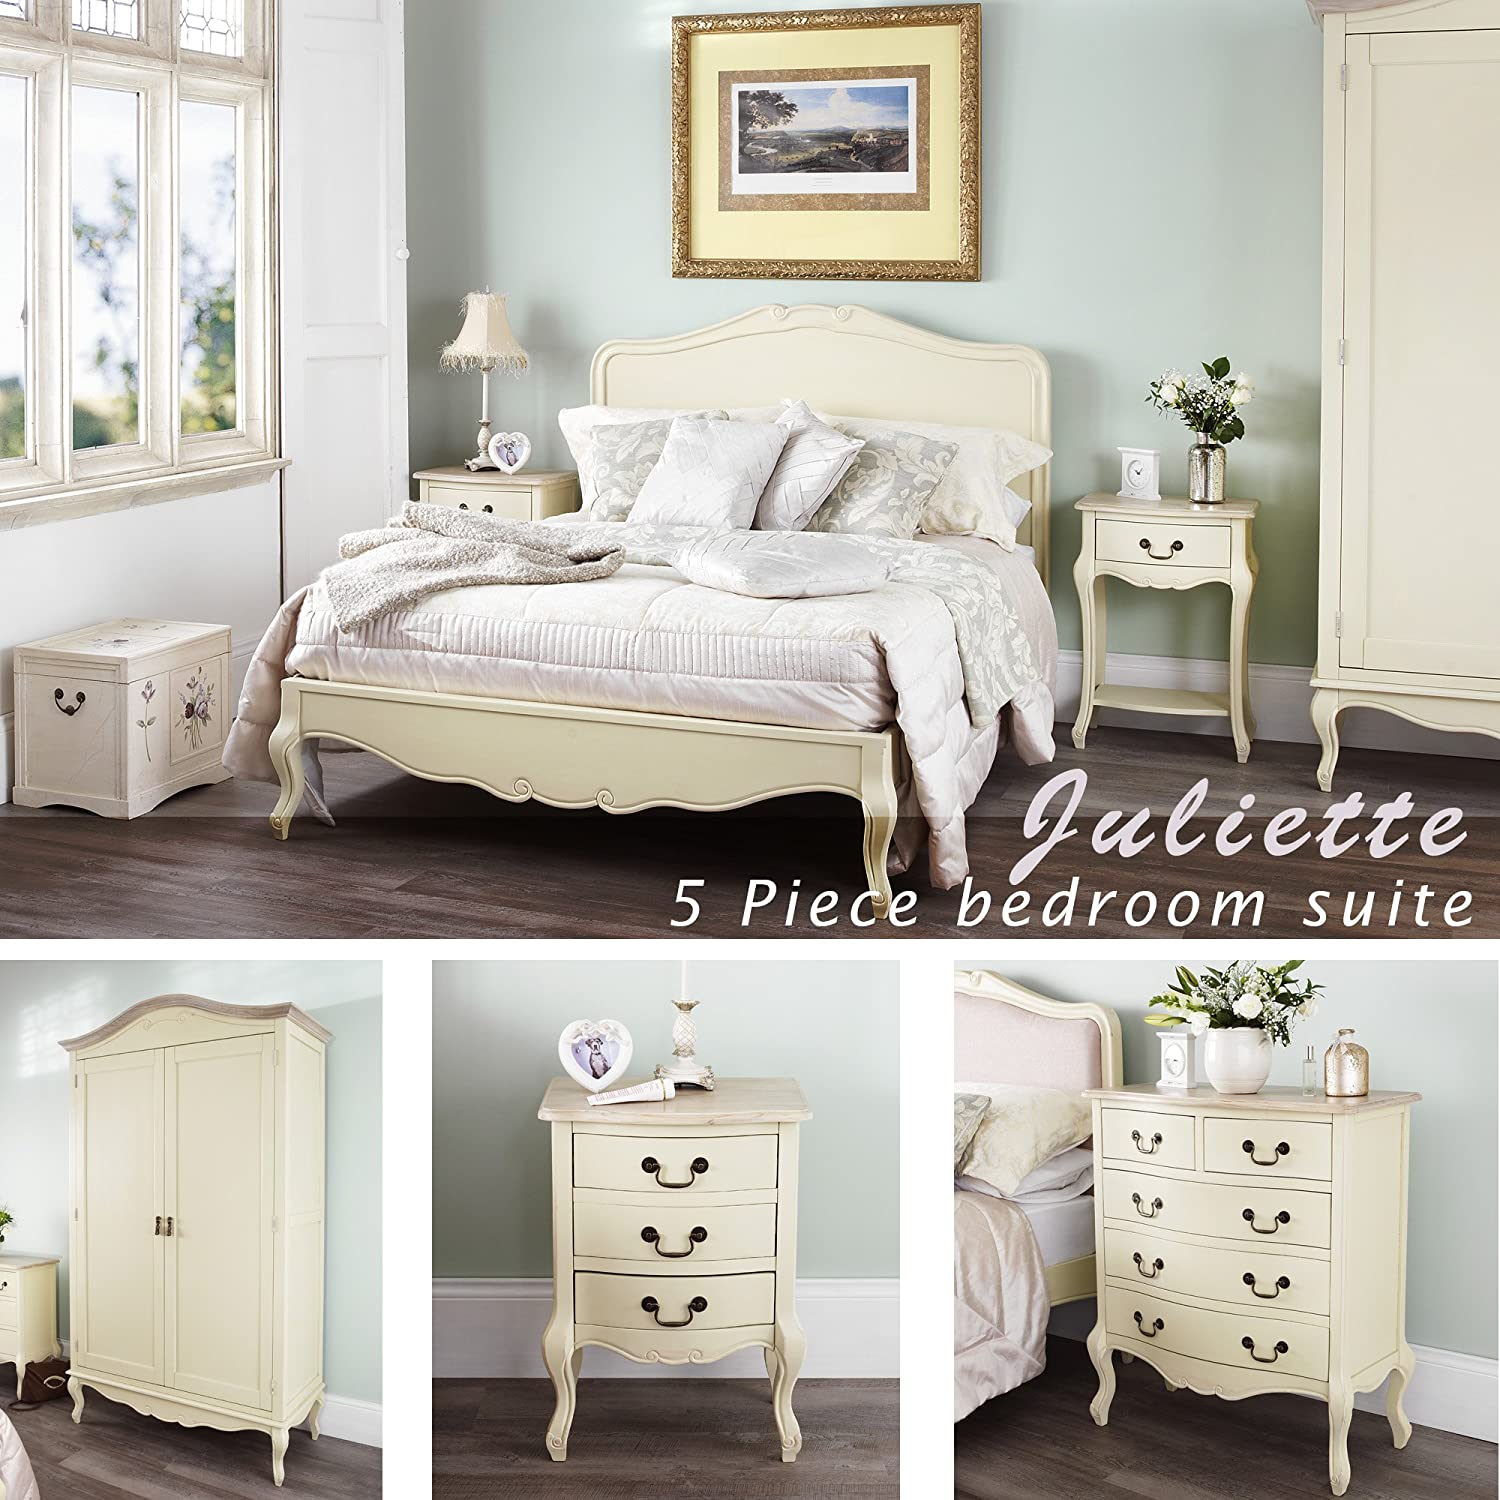 Superieur Juliette Shabby Chic Champagne Double Bed 5pc Bedroom Furniture Set, FULLY  ASSEMBLED: Amazon.co.uk: Kitchen U0026 Home